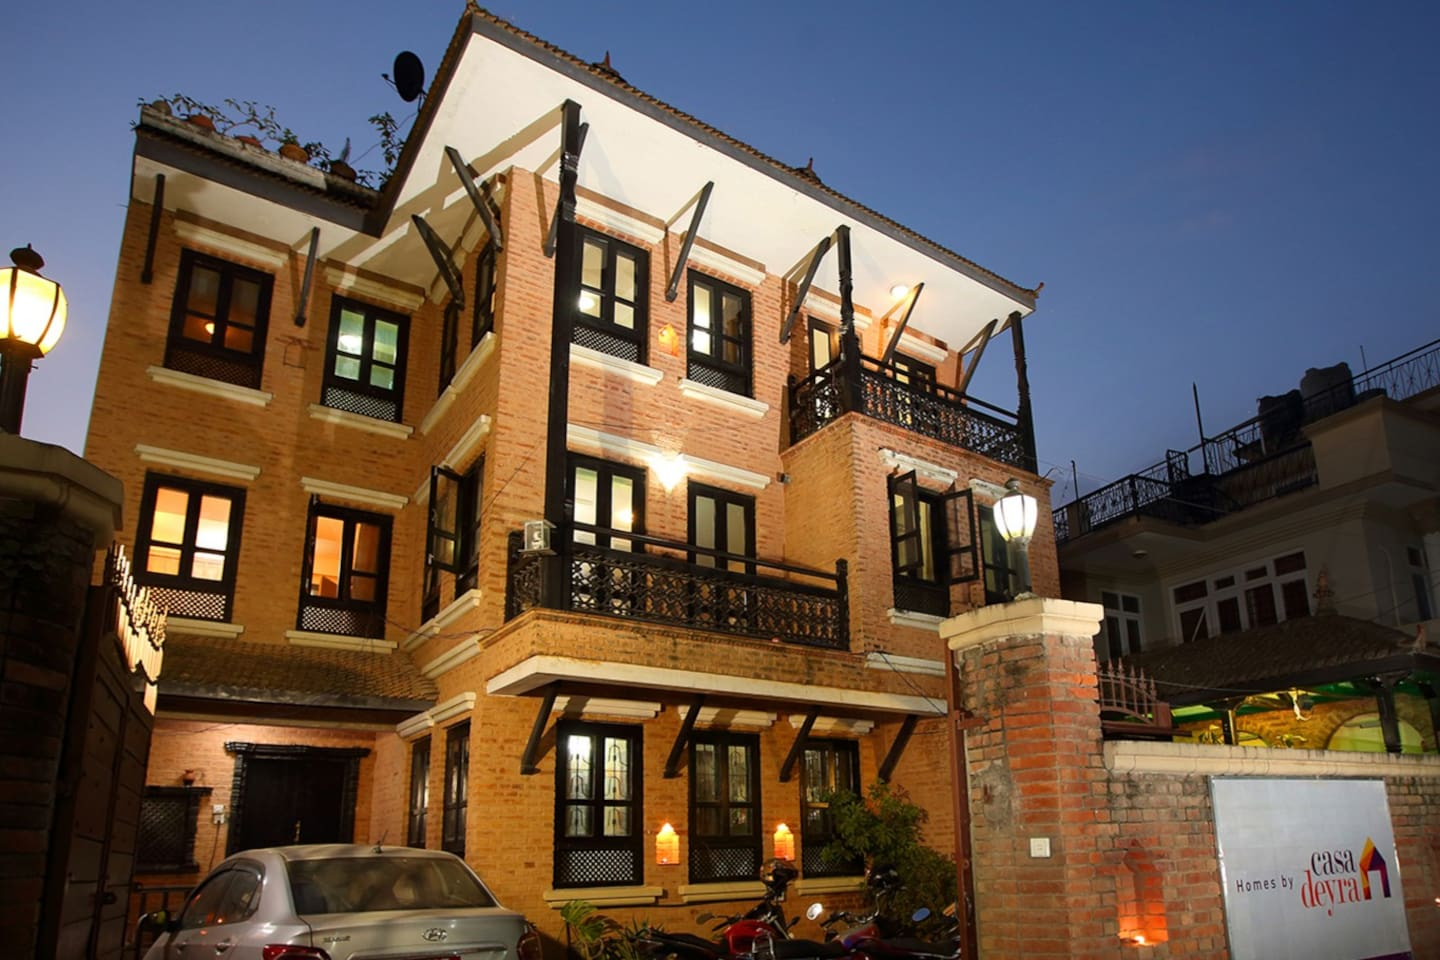 Authentic experience with highest comfort @ traditional charm